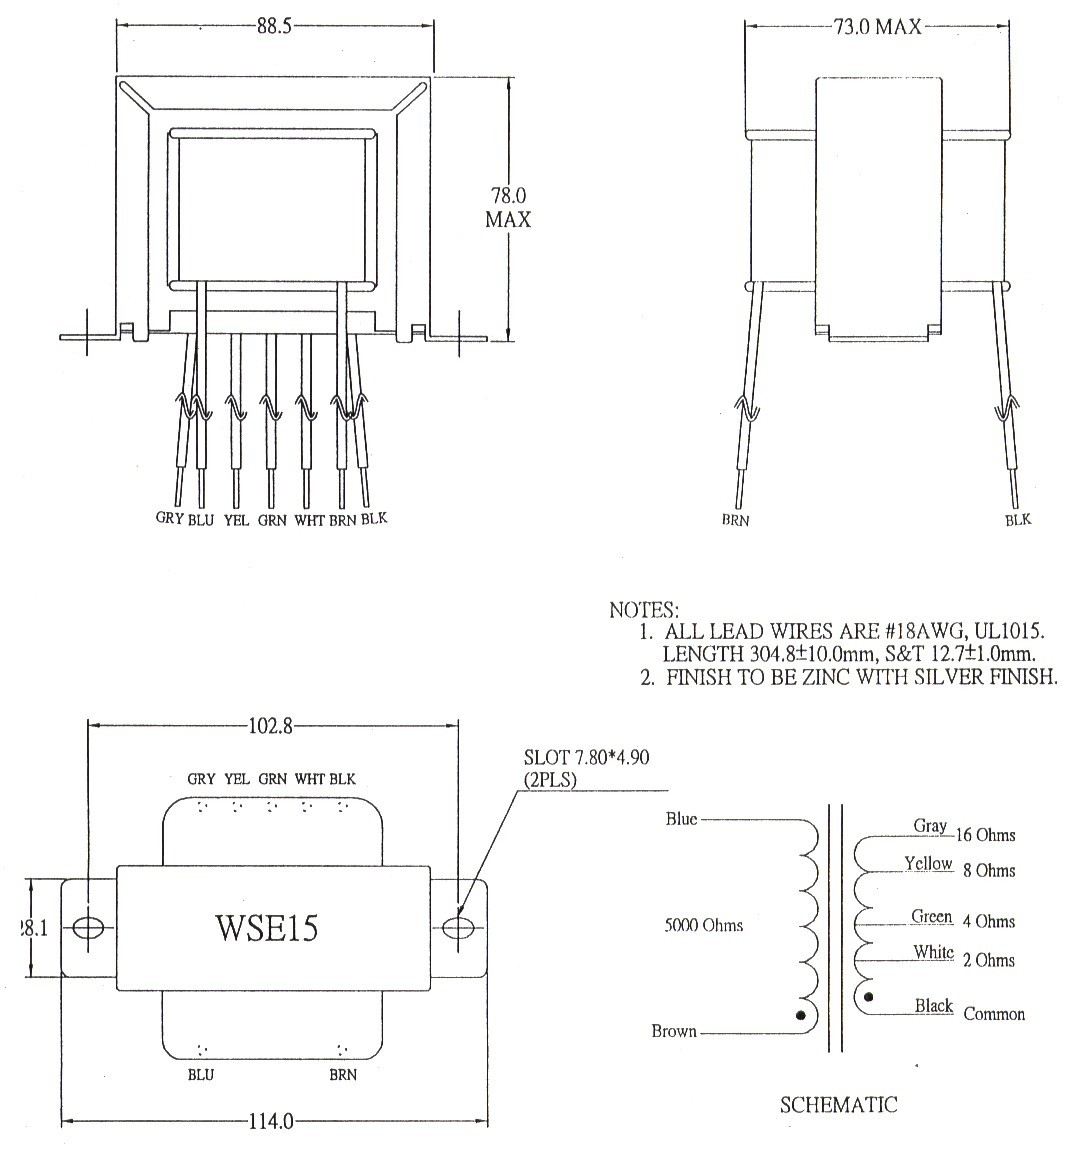 wse15sch wse15 transformer mercury magnetics wiring diagram at readyjetset.co